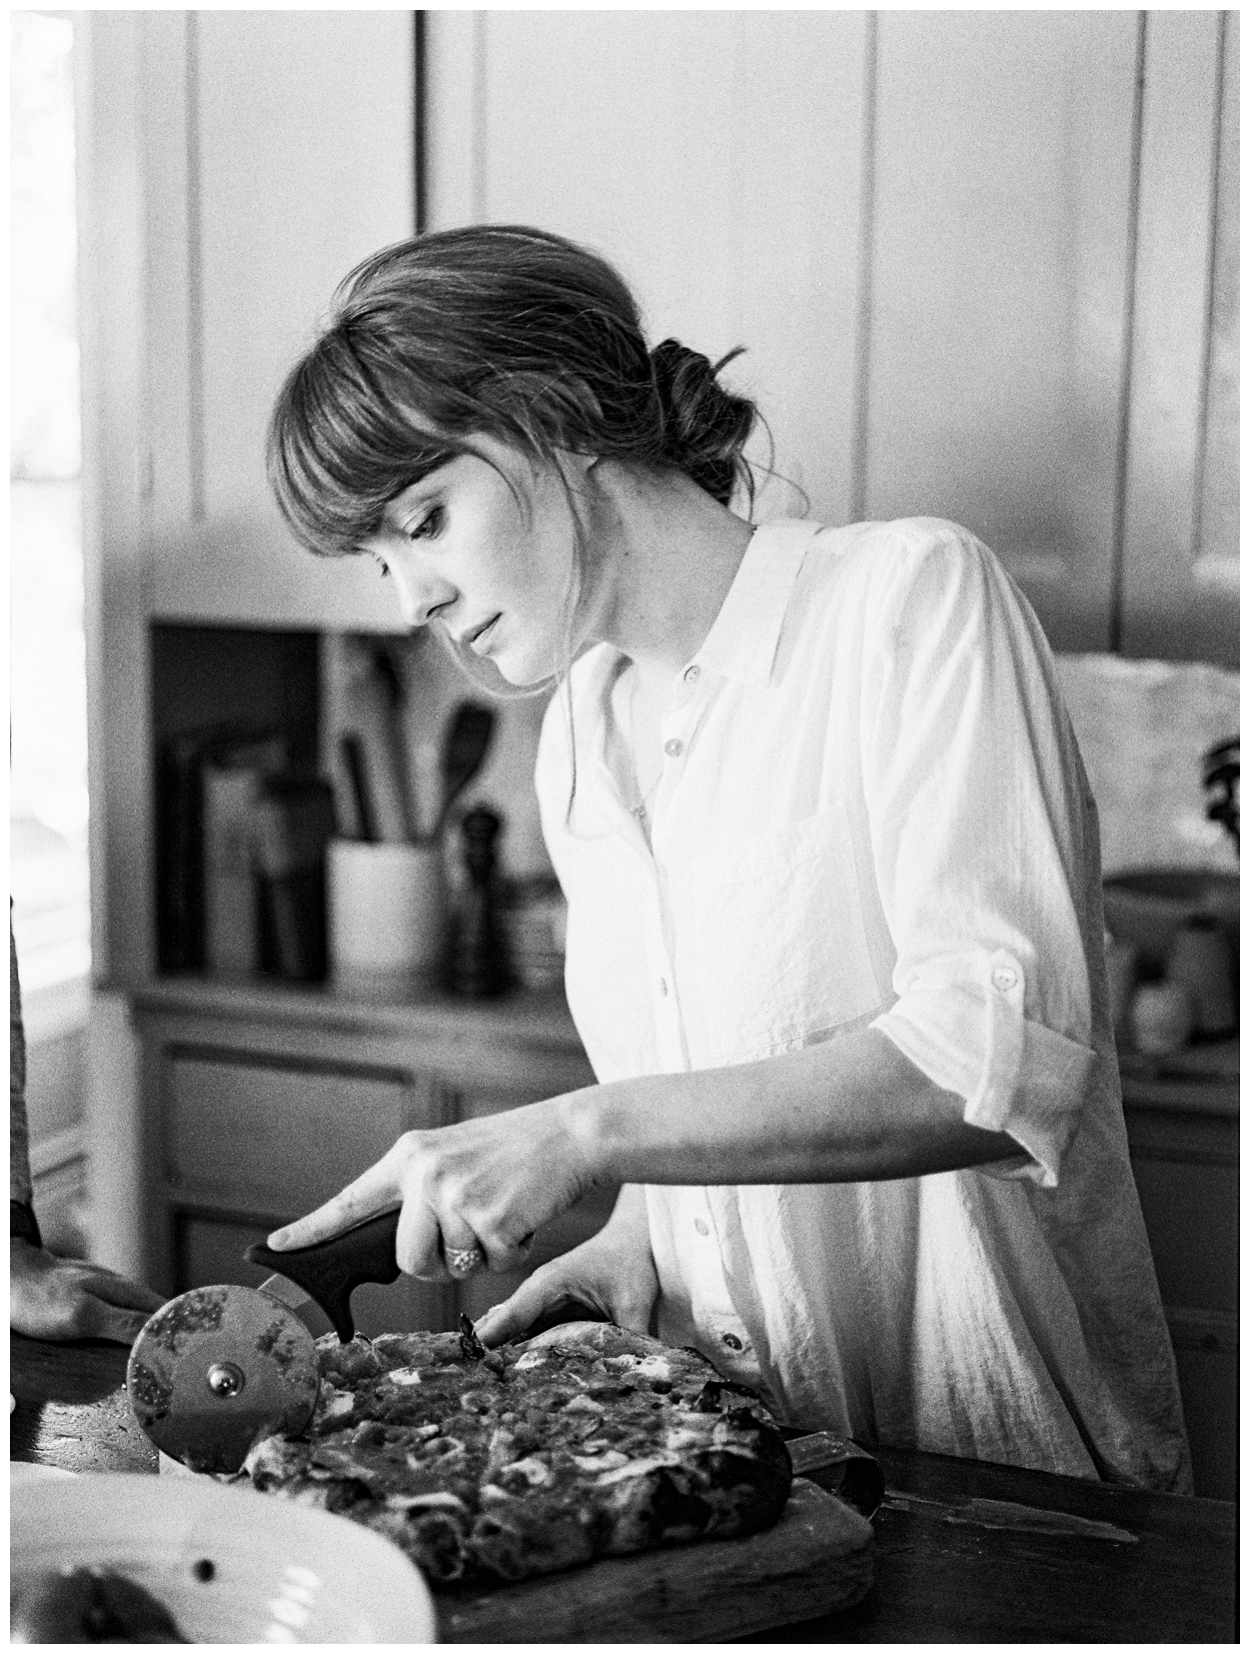 culinary anniversary session in the kitchen with a couple cooking pizza together by fine art photographer Lissa Ryan Photography